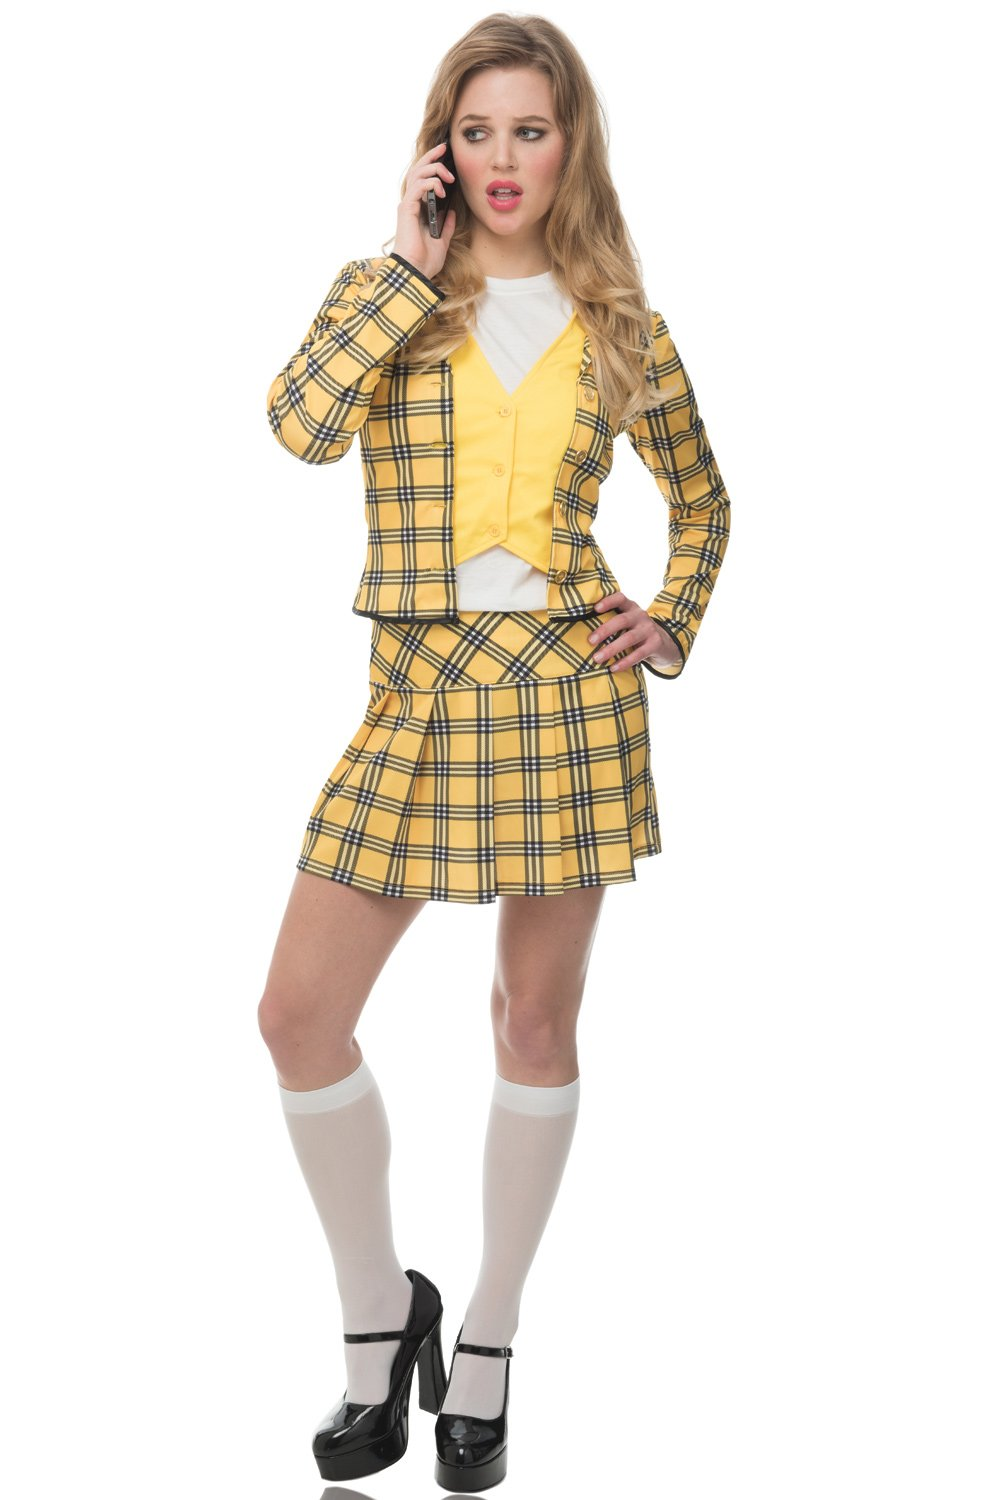 Women's Notionless Costume, Size Large 12-14